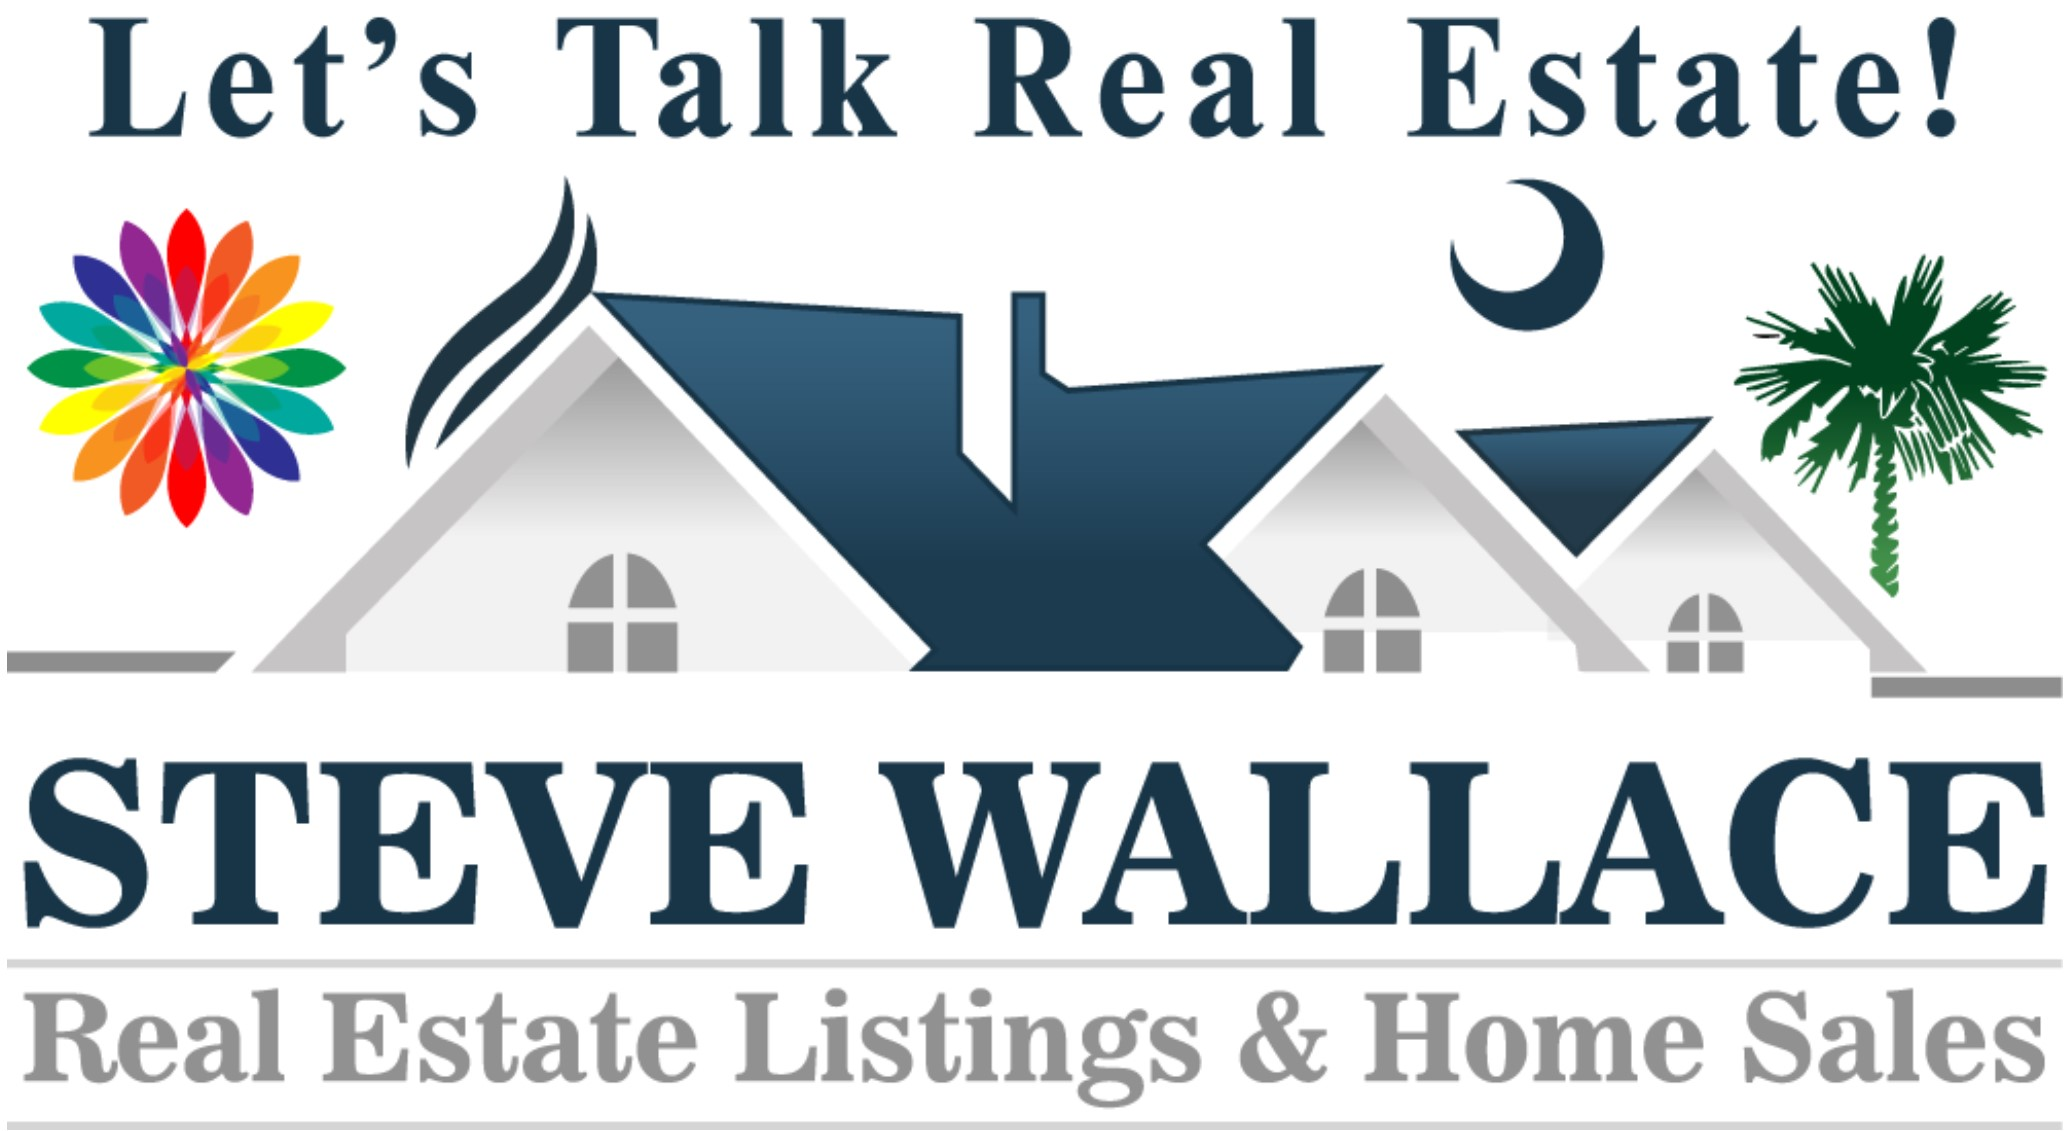 Let's Talk Real Estate, Steve Wallace, Greater Bluffton, SC, Agent Realtor